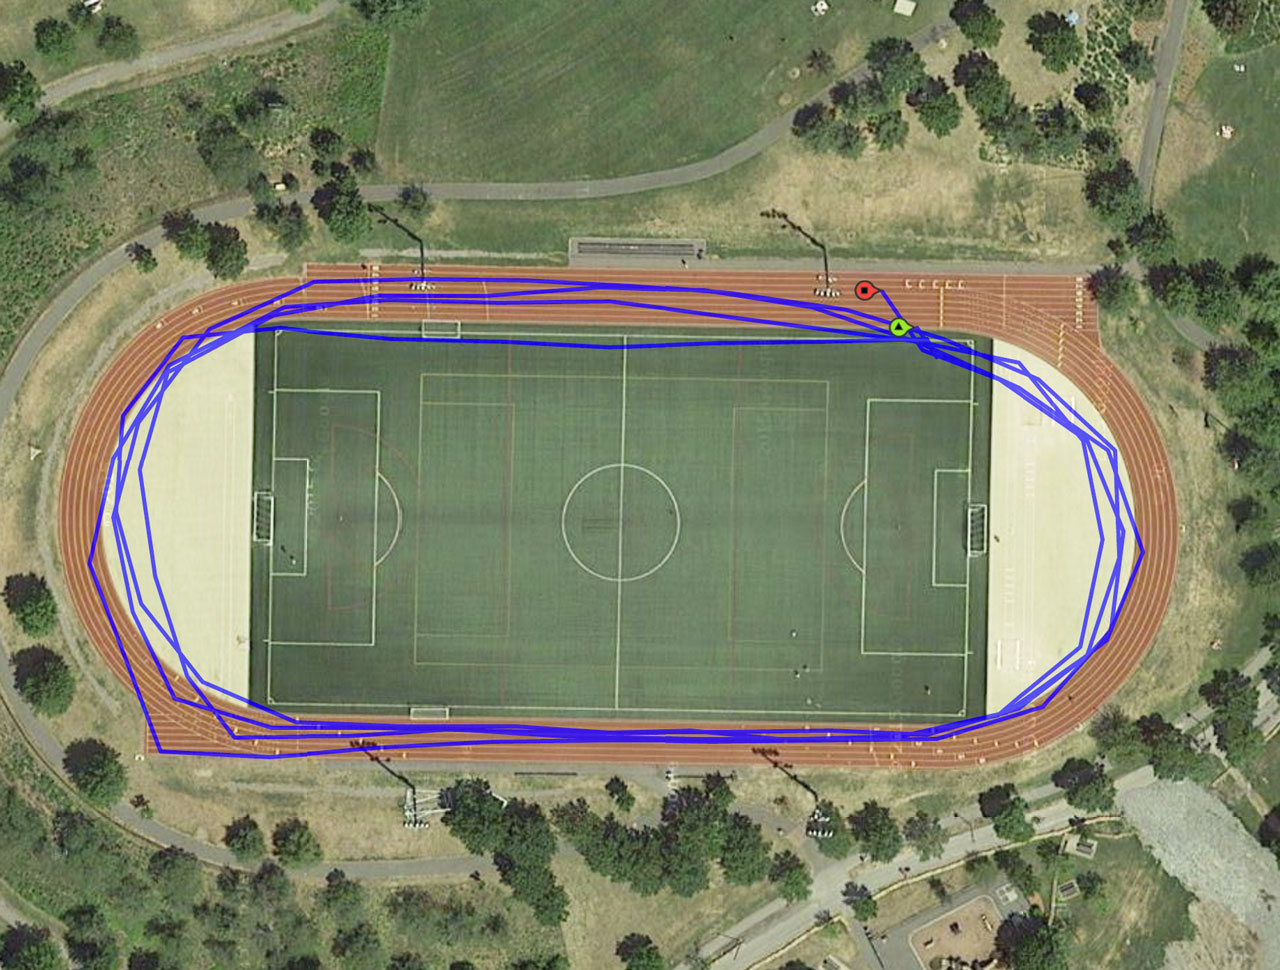 Google maps satellite view of Danehy Park track, with overlay of GPS-recorded trajectory of four laps